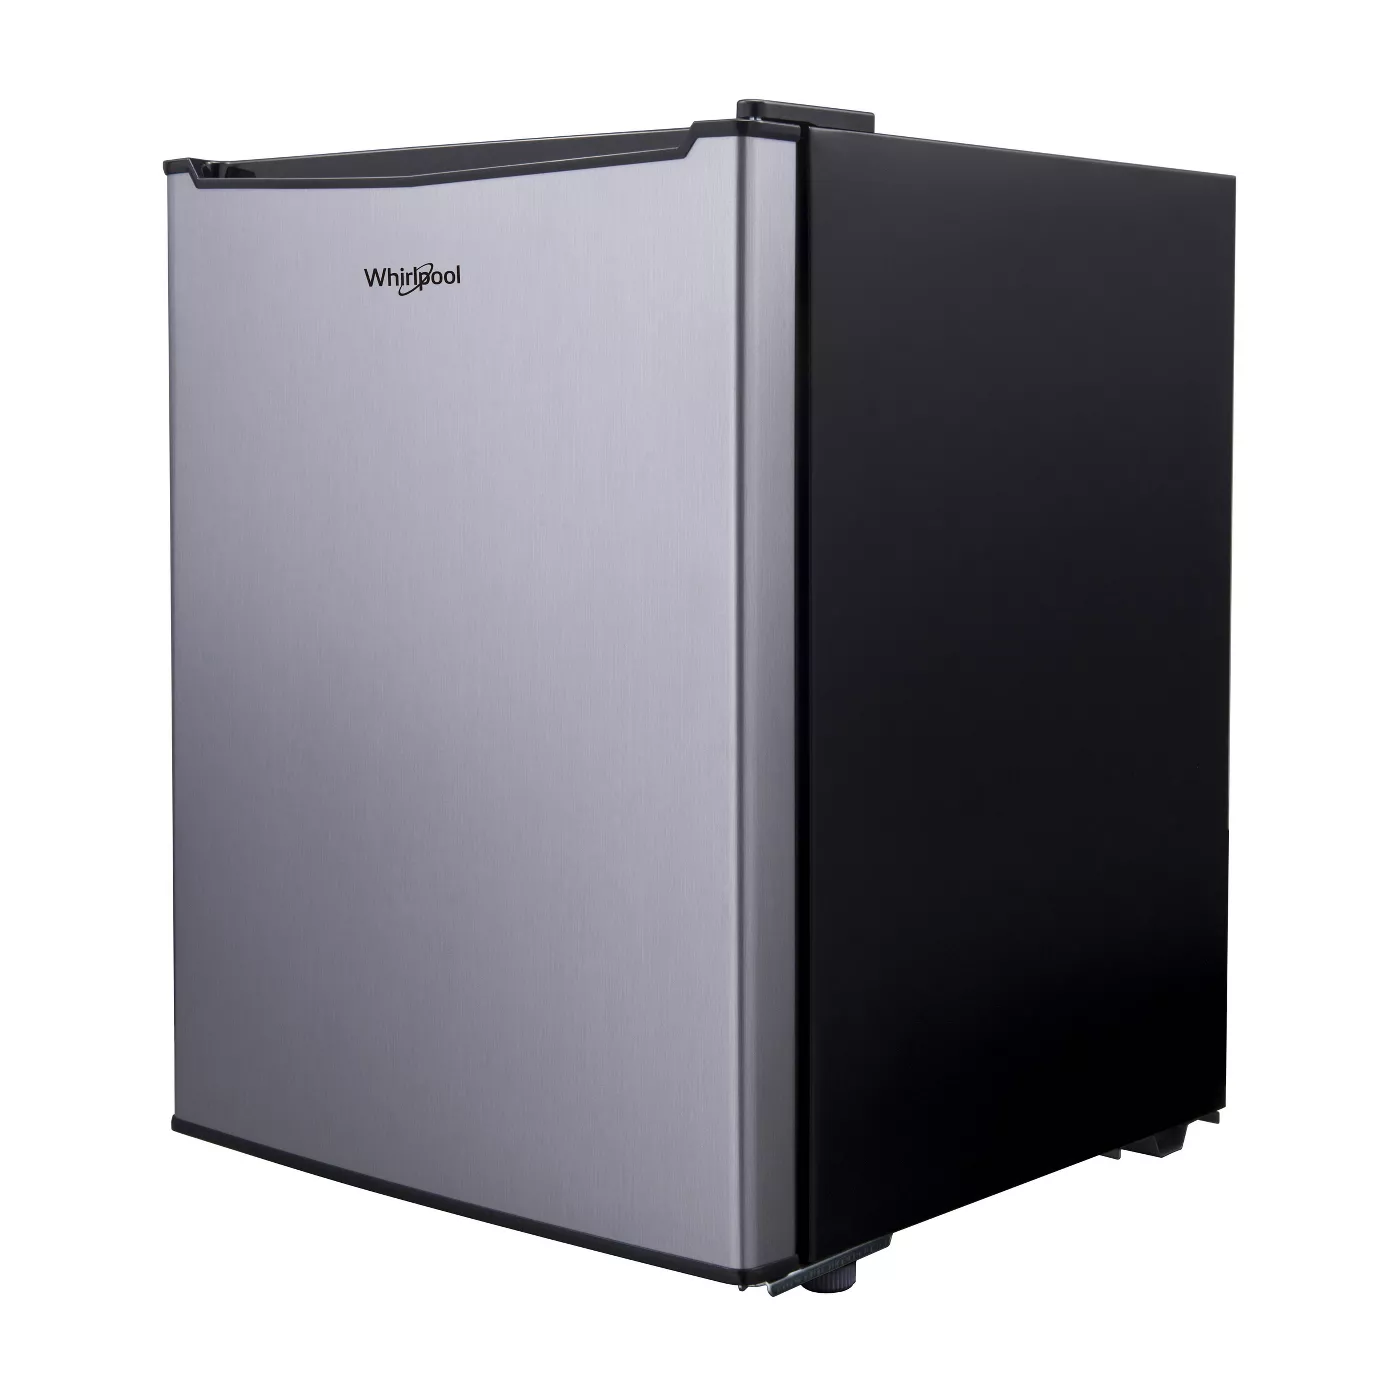 20% Off Whirlpool 2.7 cu ft Mini Refrigerator Stainless Steel BC-75A